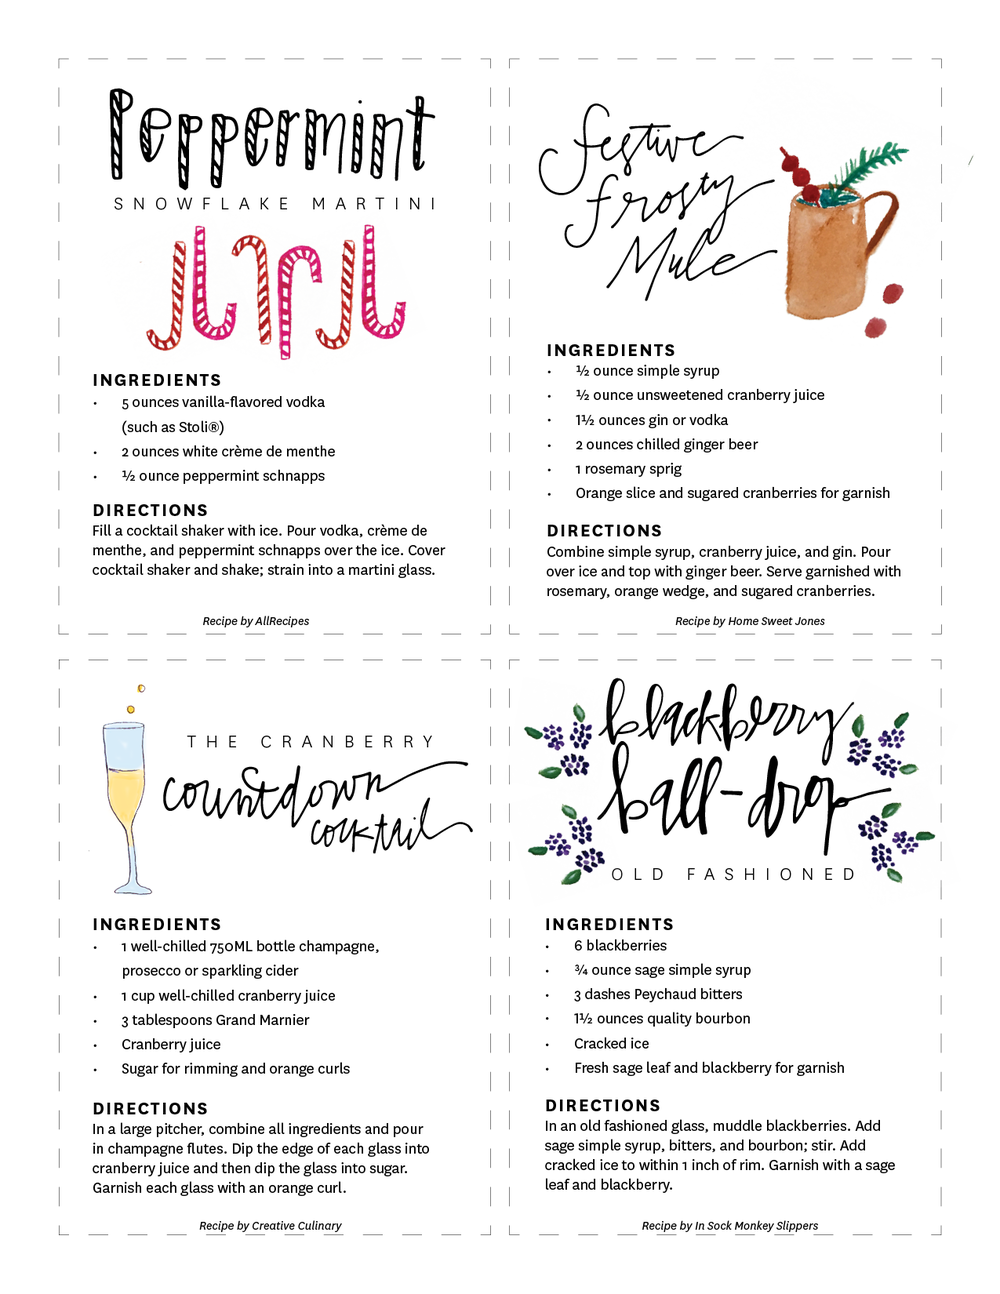 Festive Five Cocktail Recipe Downloads | Flyover Design Co.